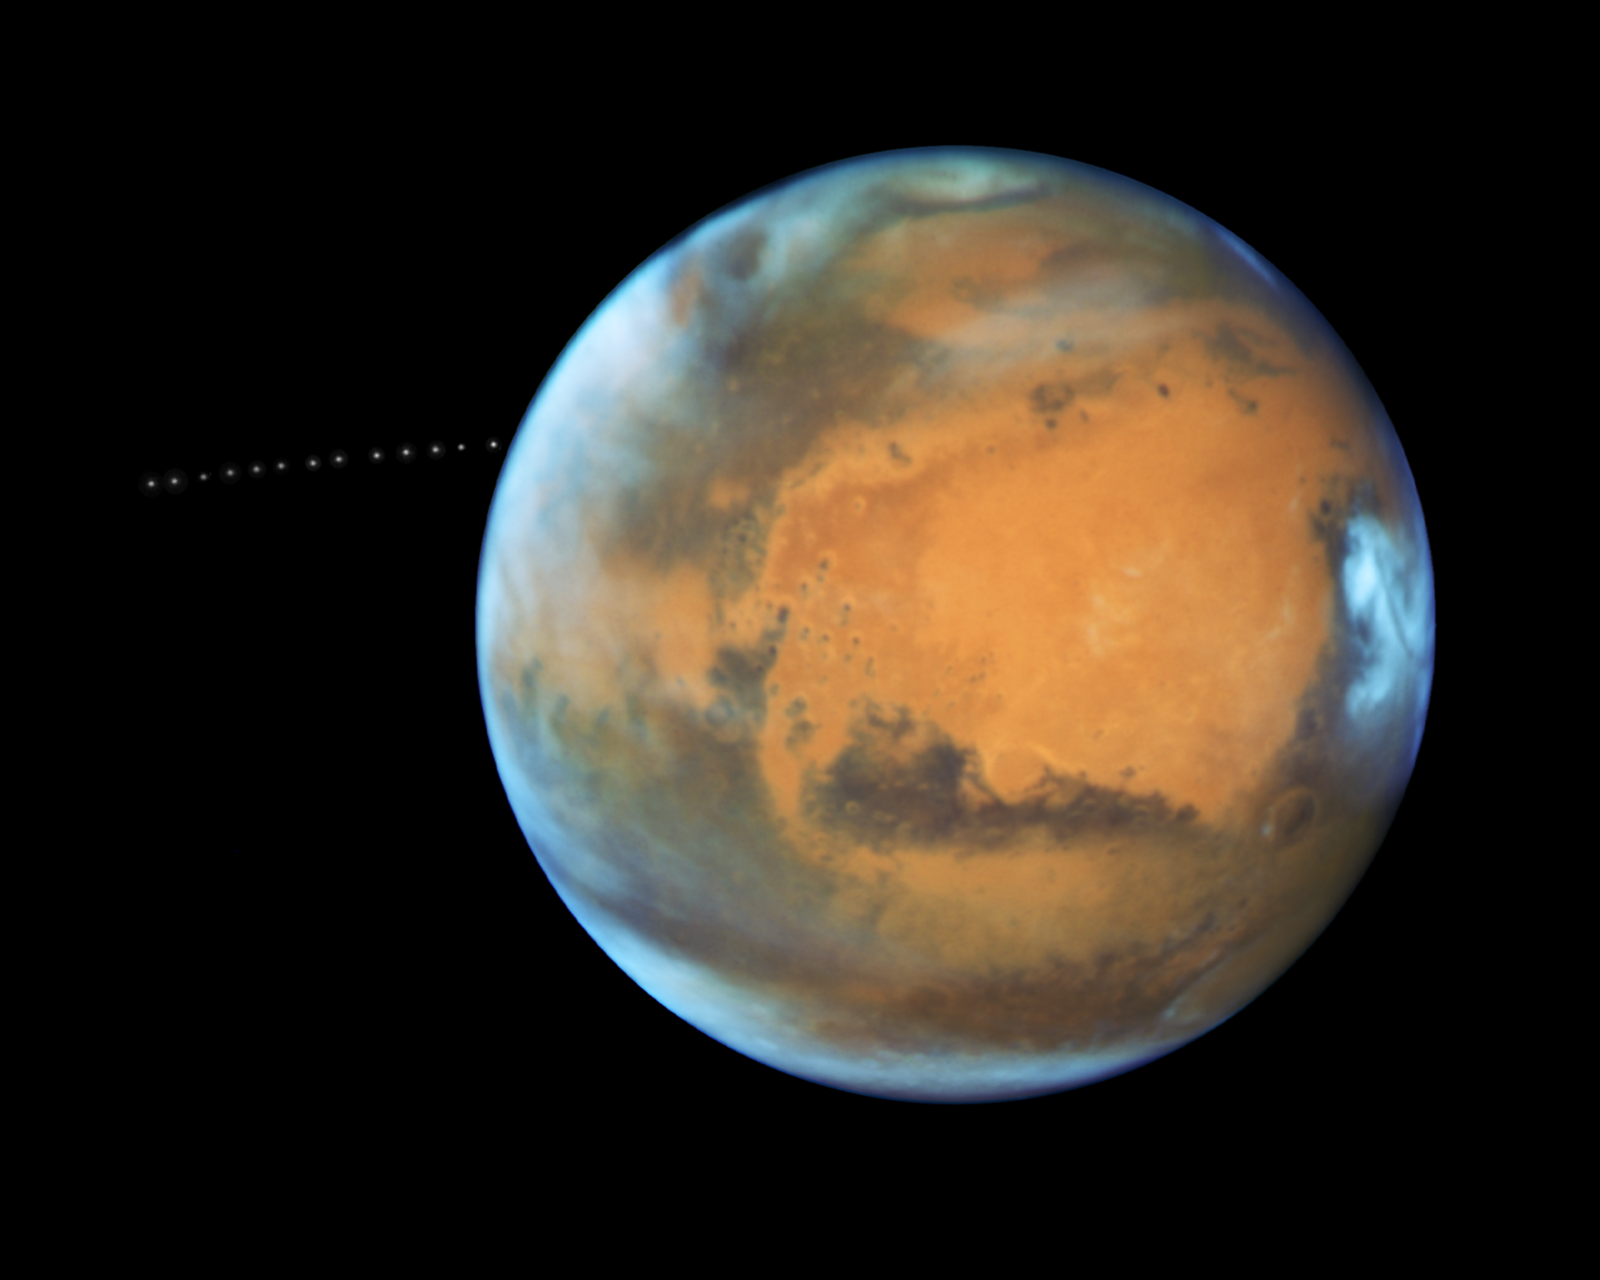 While photographing Mars, NASA's Hubble Space Telescope captured a cameo appearance of the tiny moon Phobos on its trek around the Red Planet.